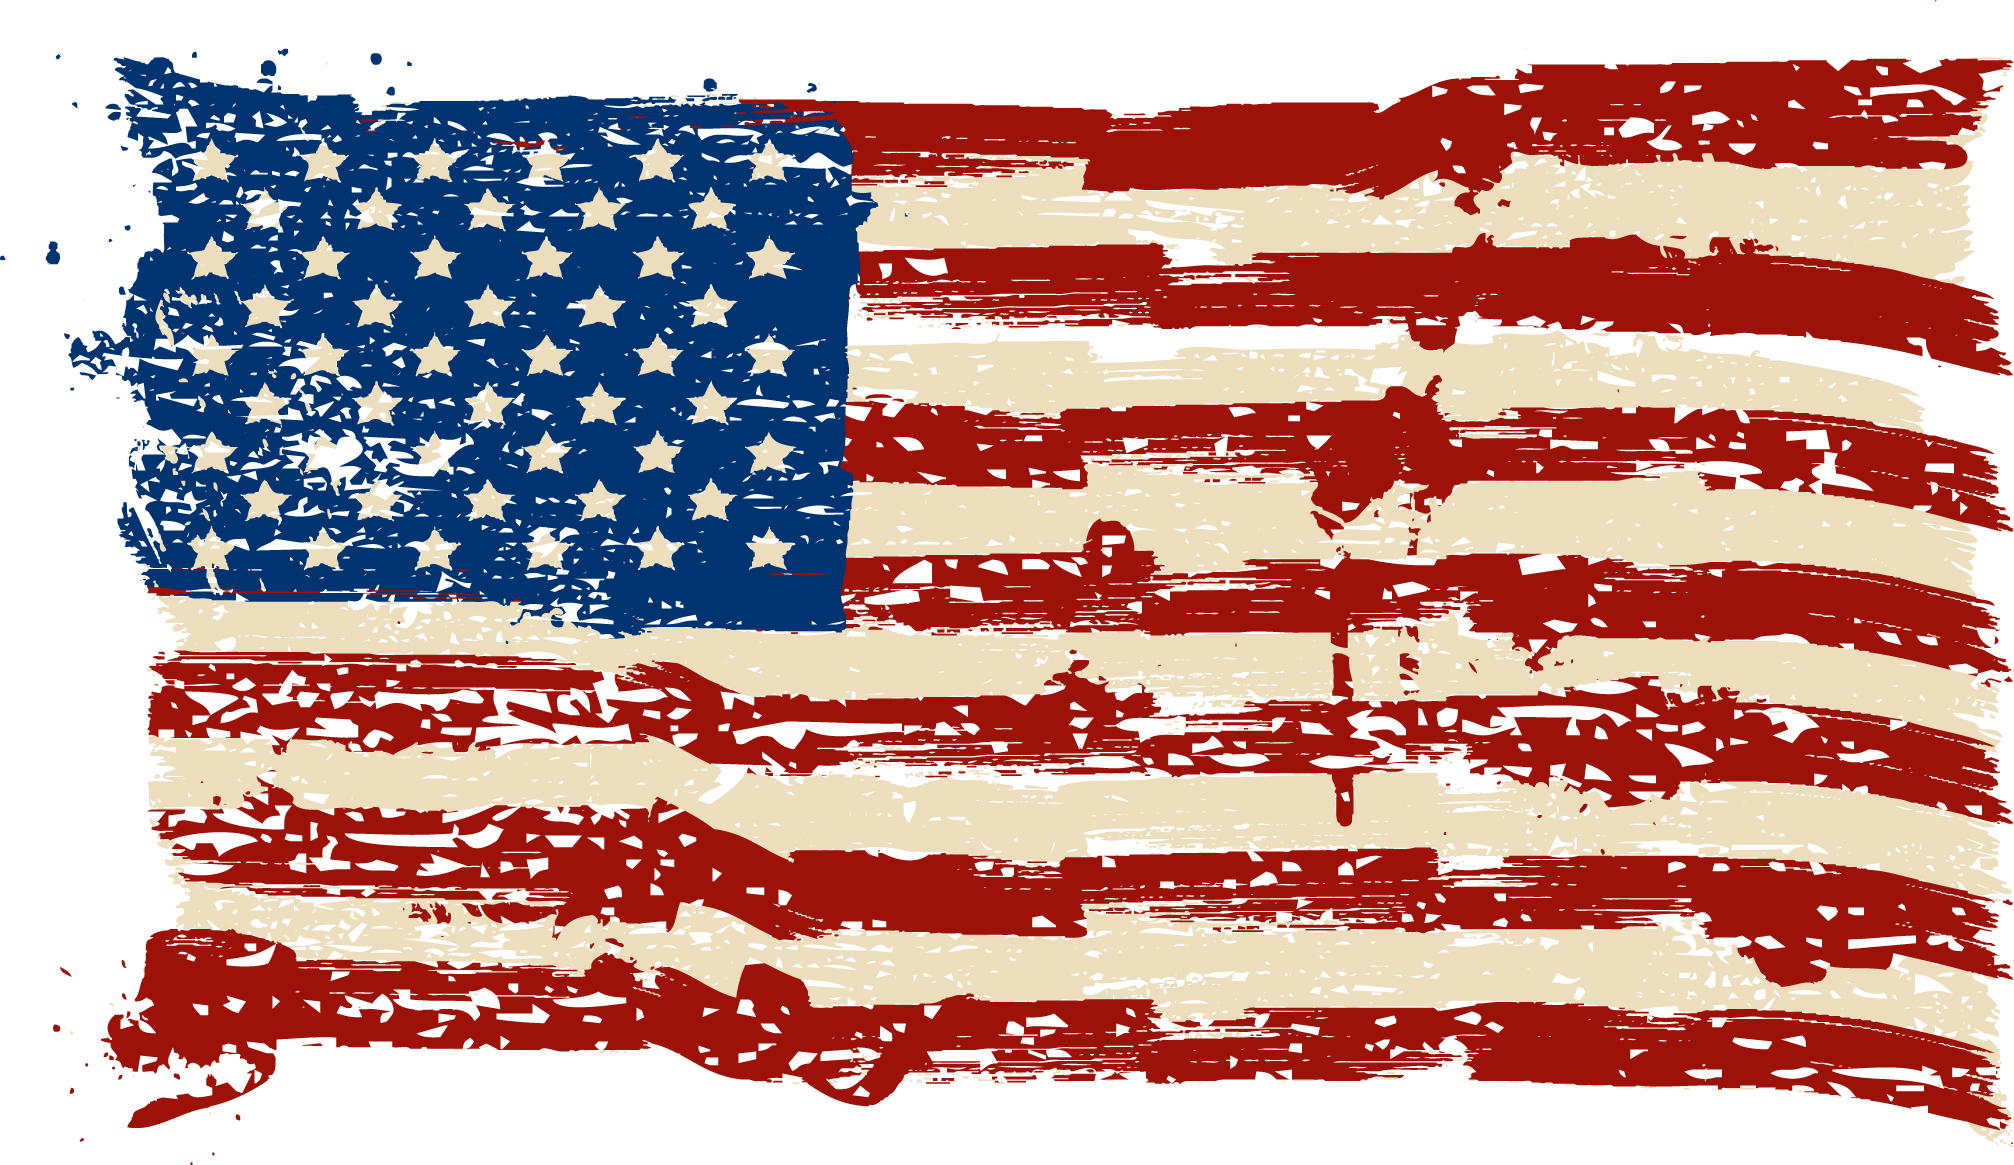 USA Flag PNG Images Transparent Free Download.